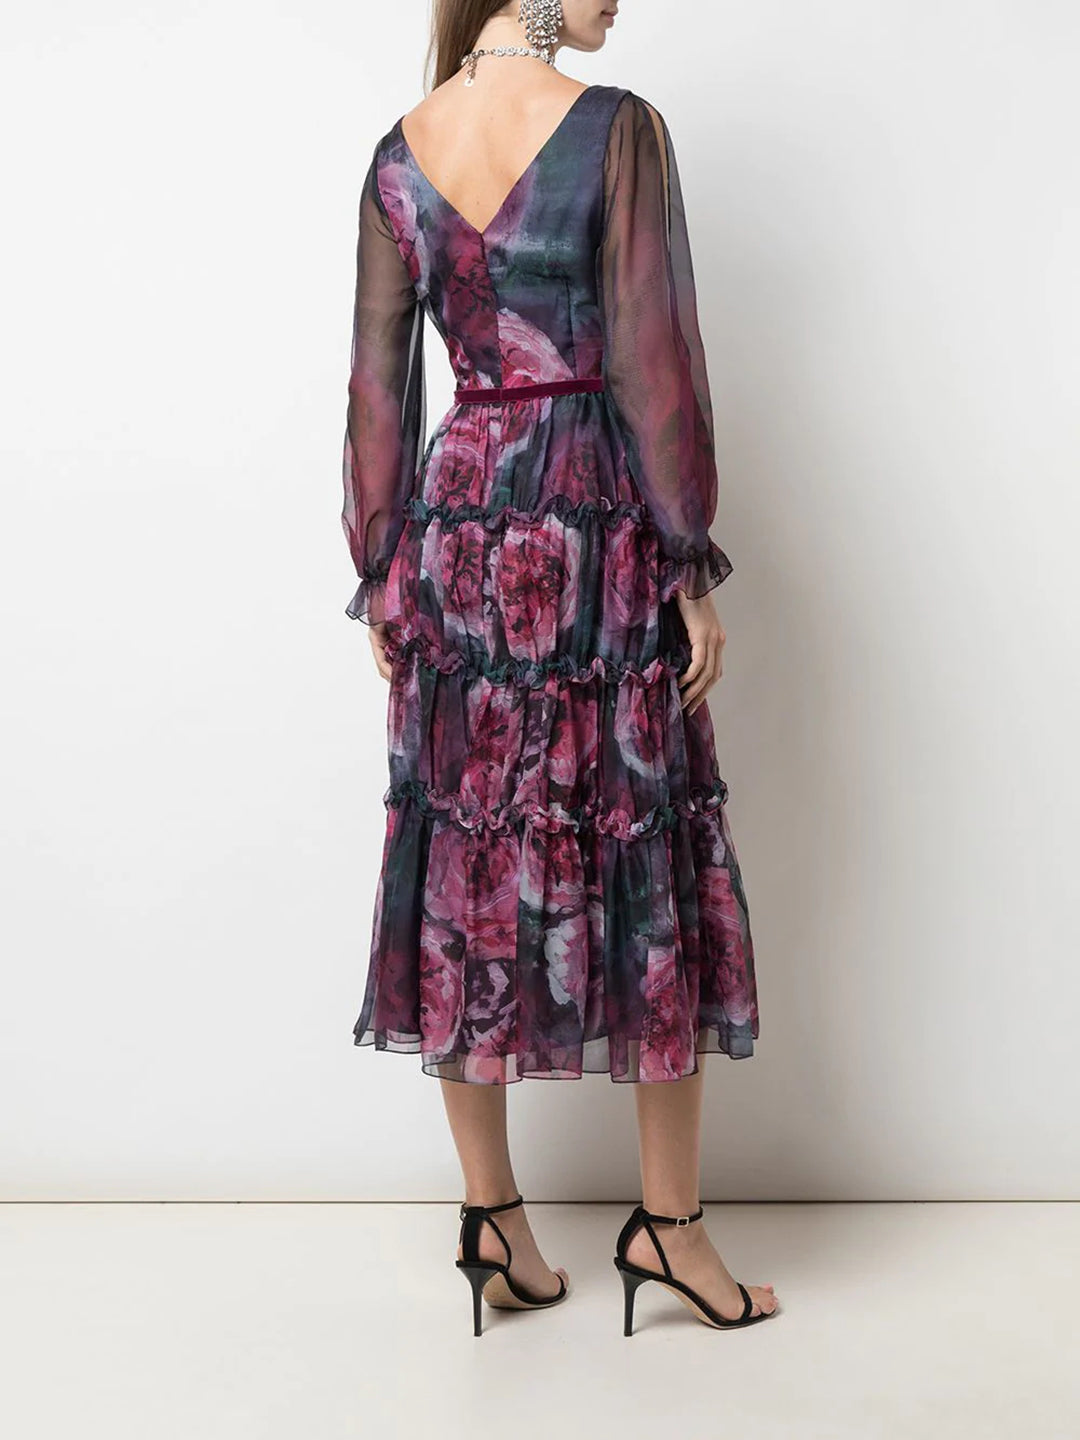 Floral Printed Chiffon Cocktail